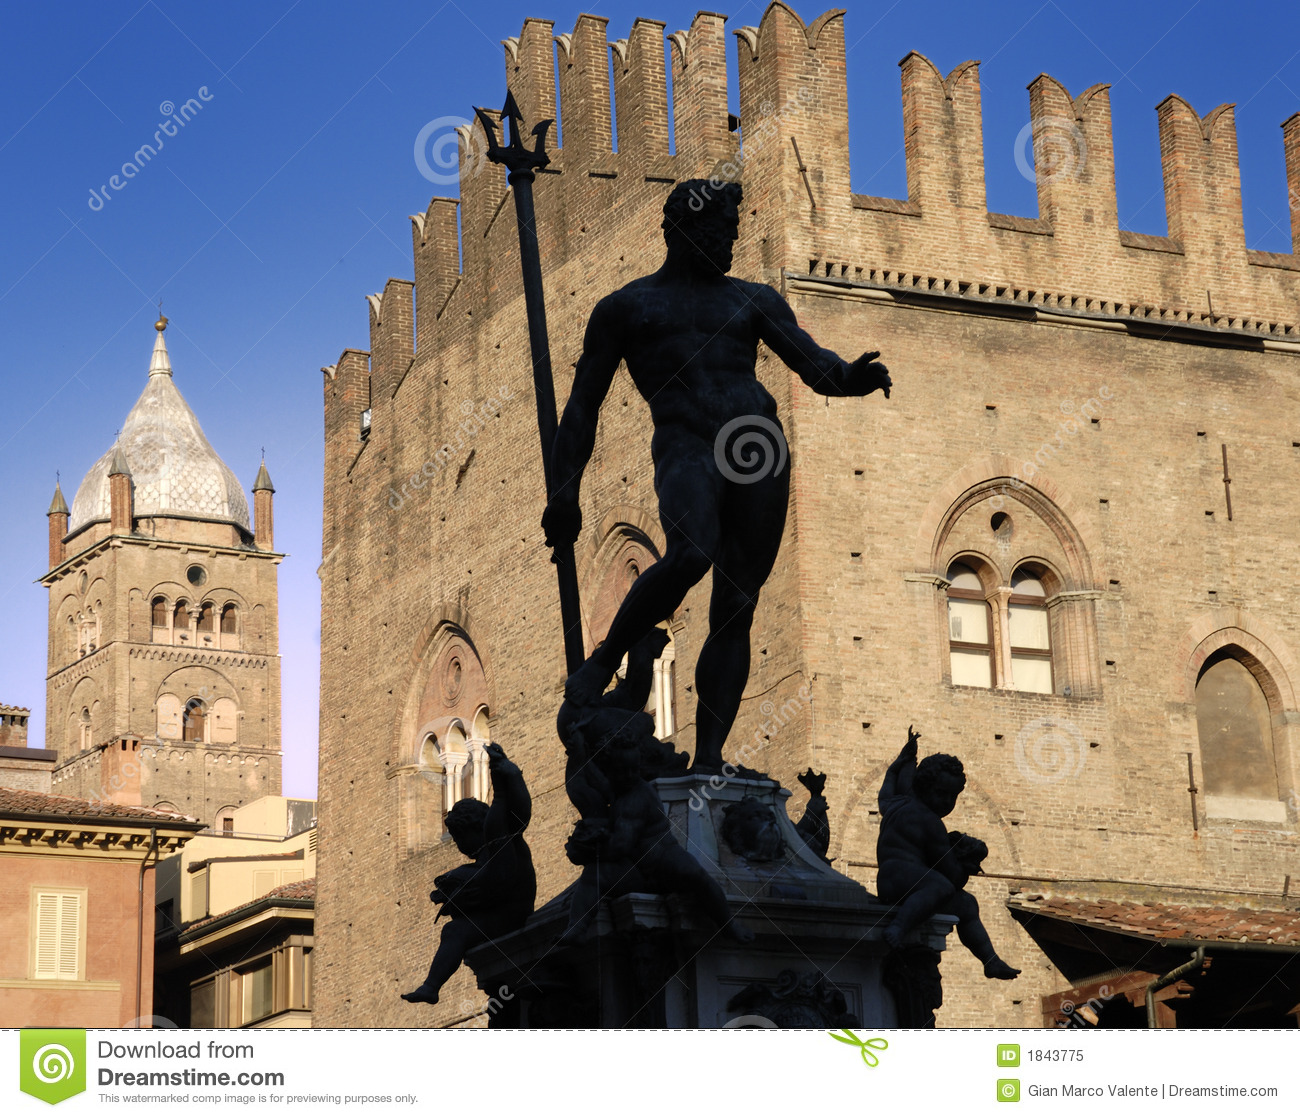 Silhoutte of the Statue of Neptune, Bologna.